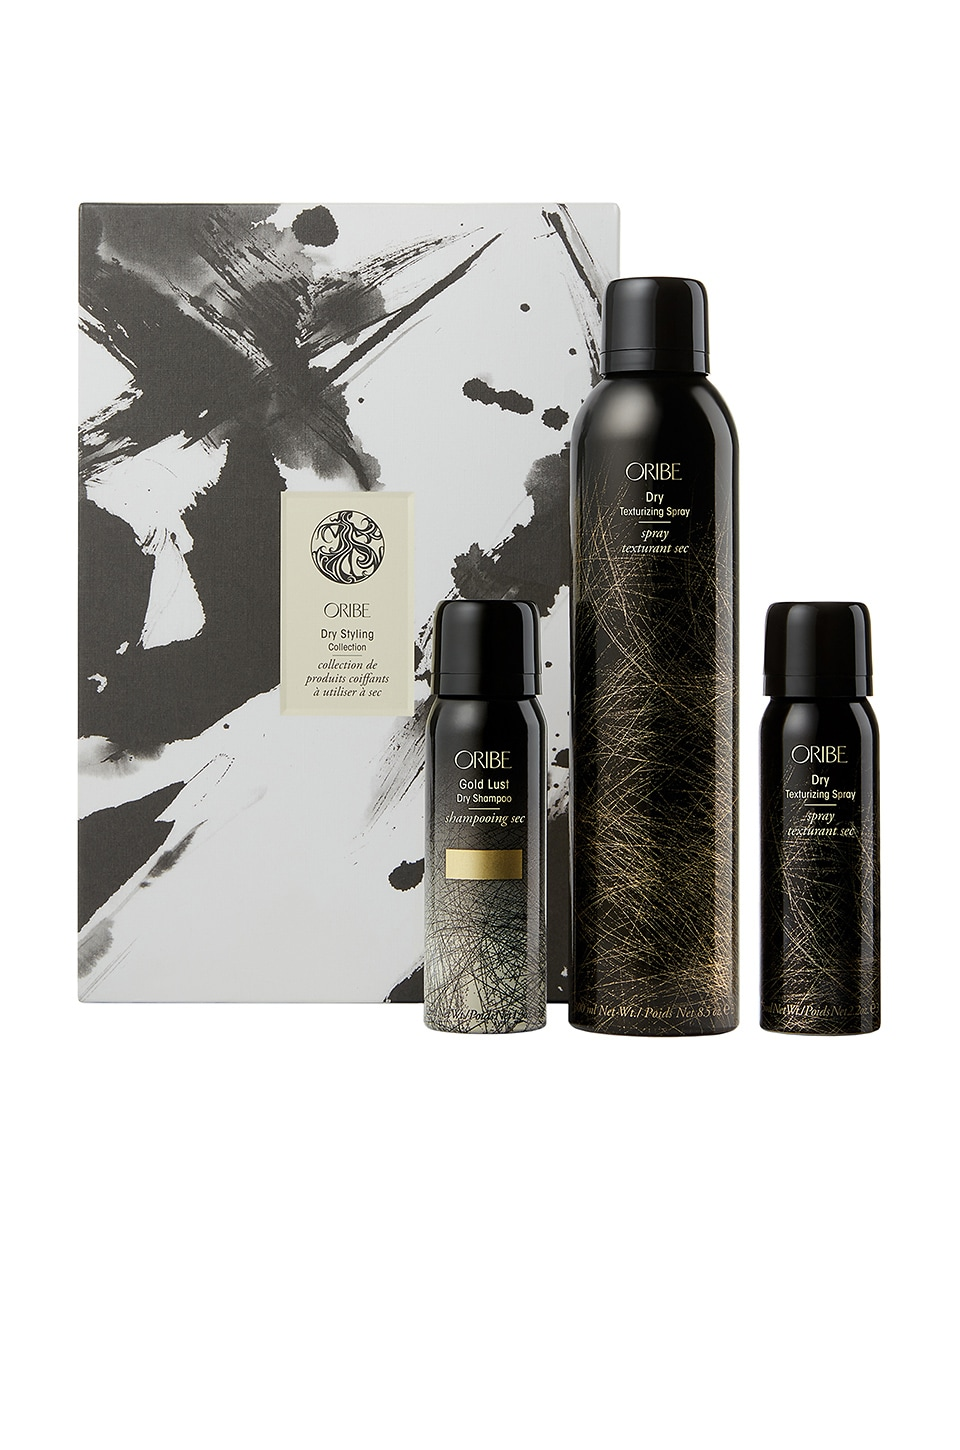 Oribe SET DE REGALOS DRY STYLING COLLECTION GIFT SET